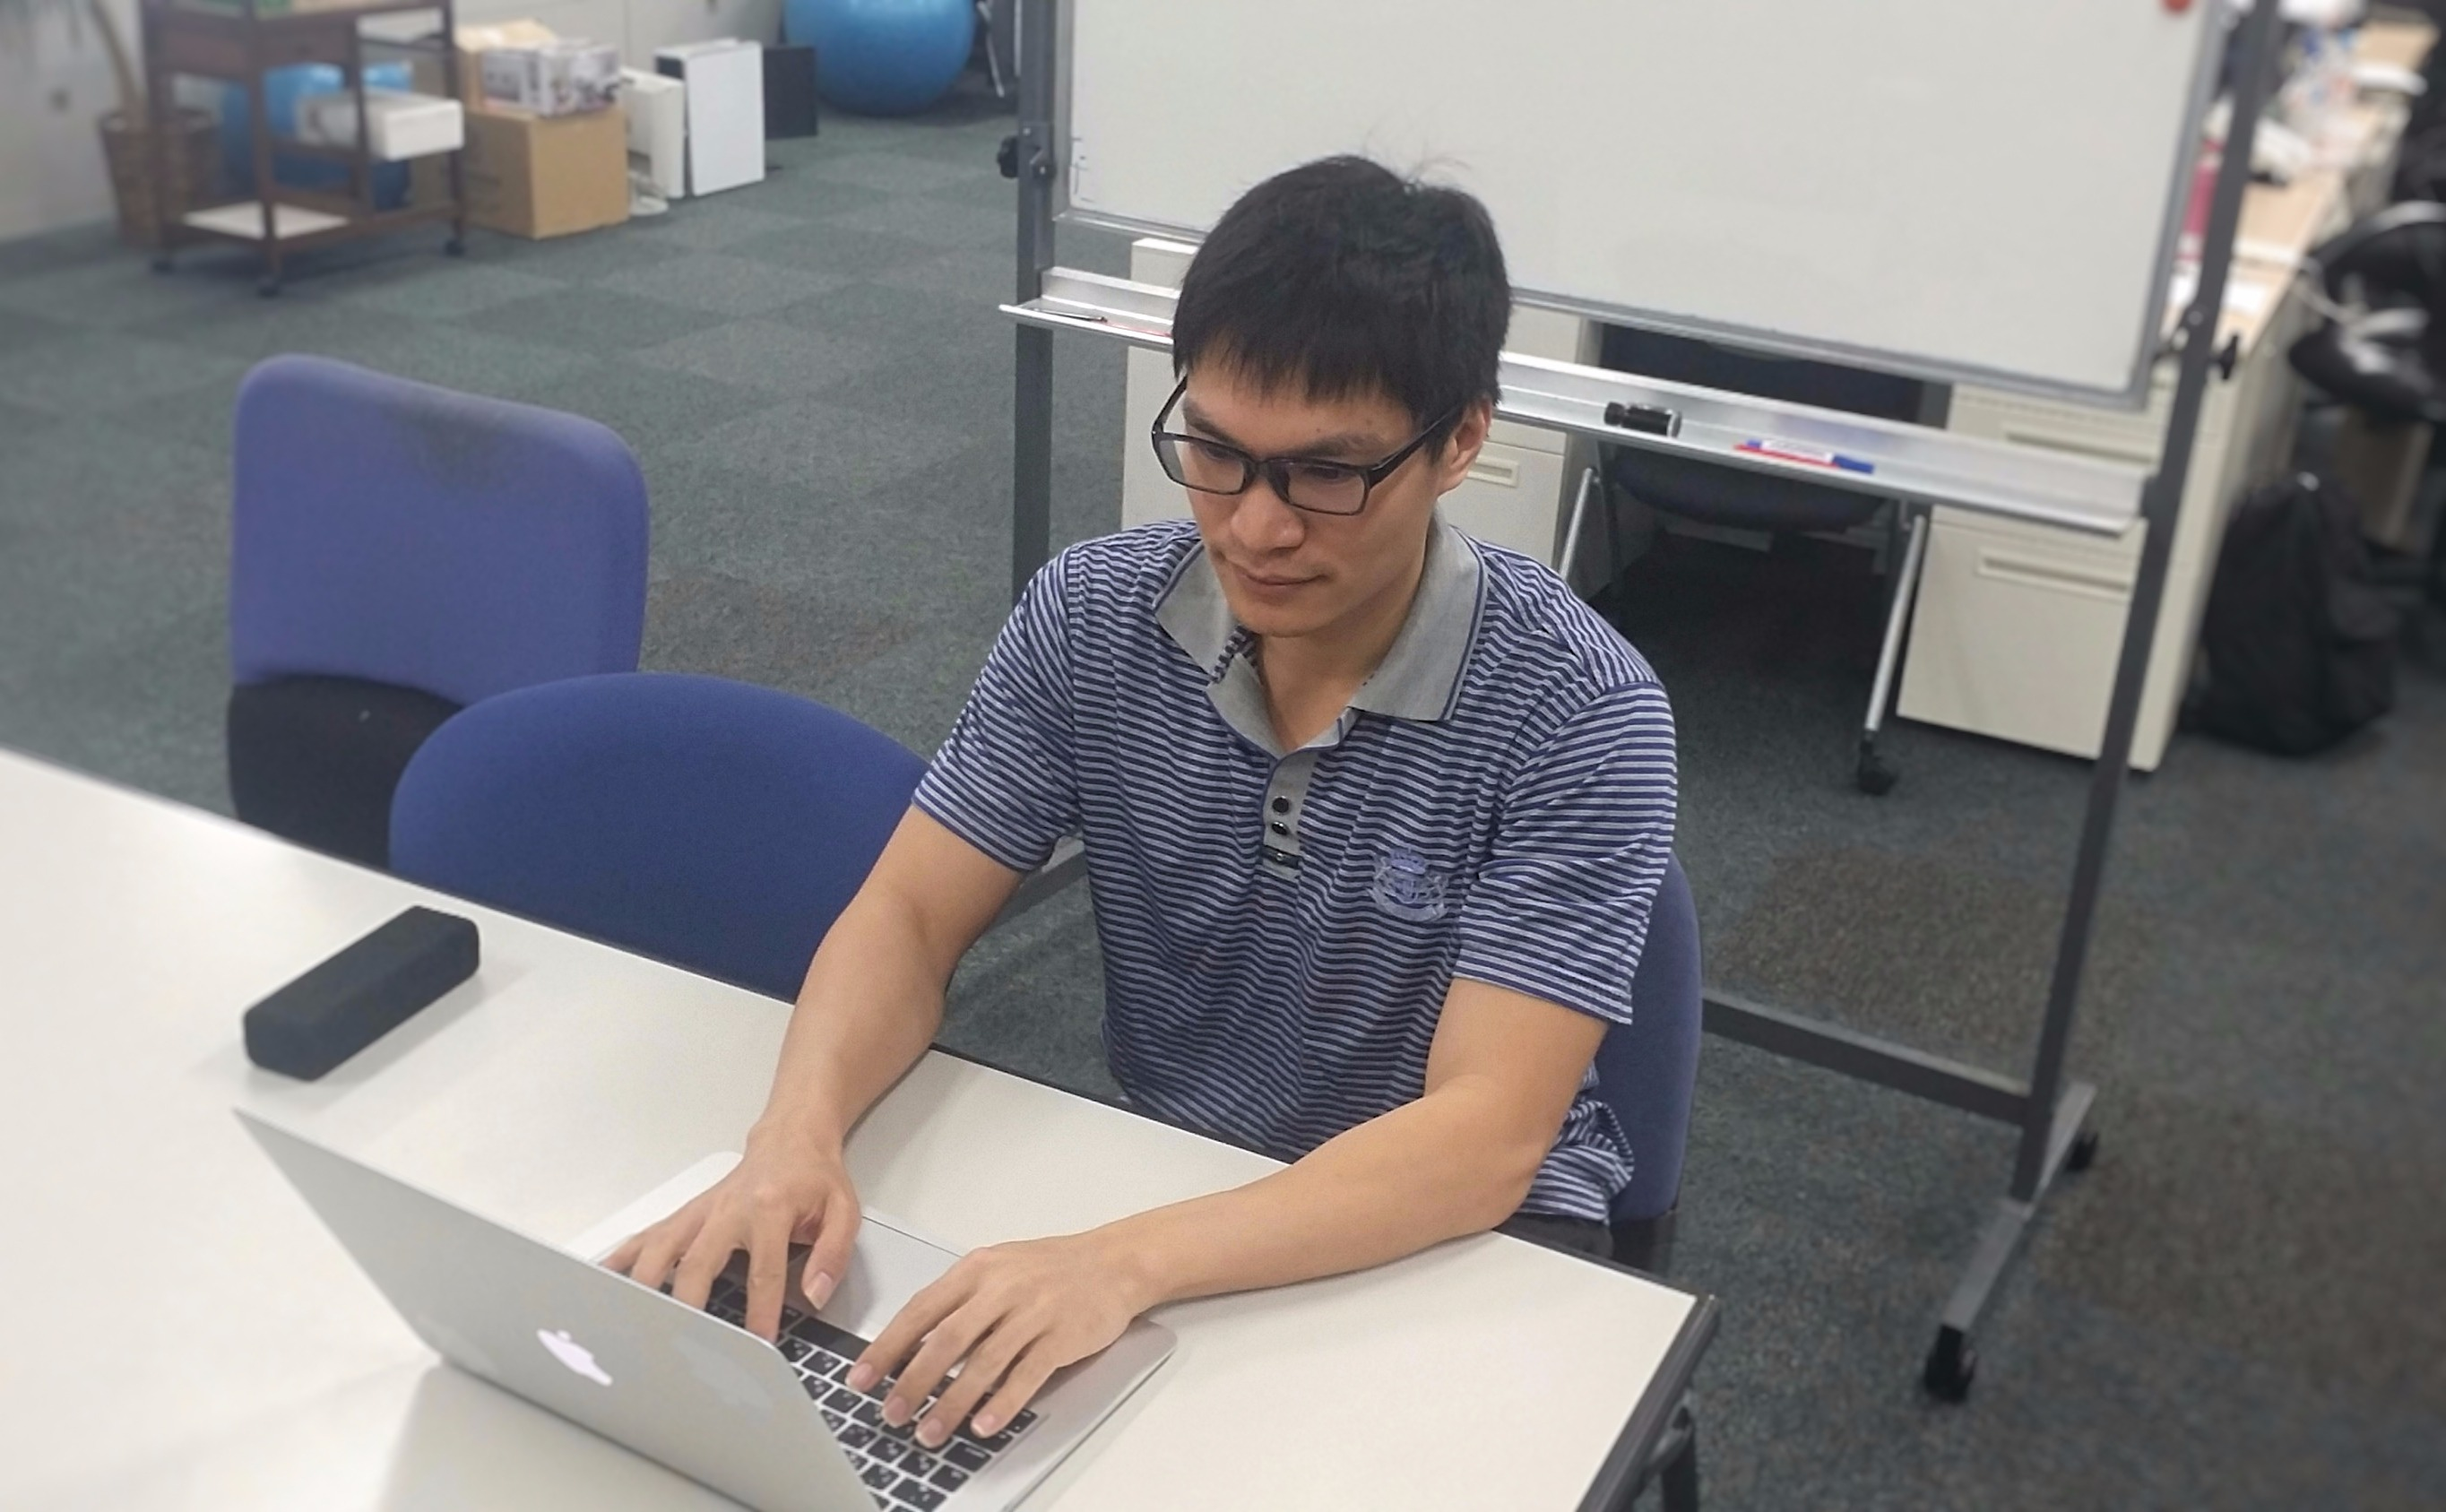 Working as a programmer in Japan